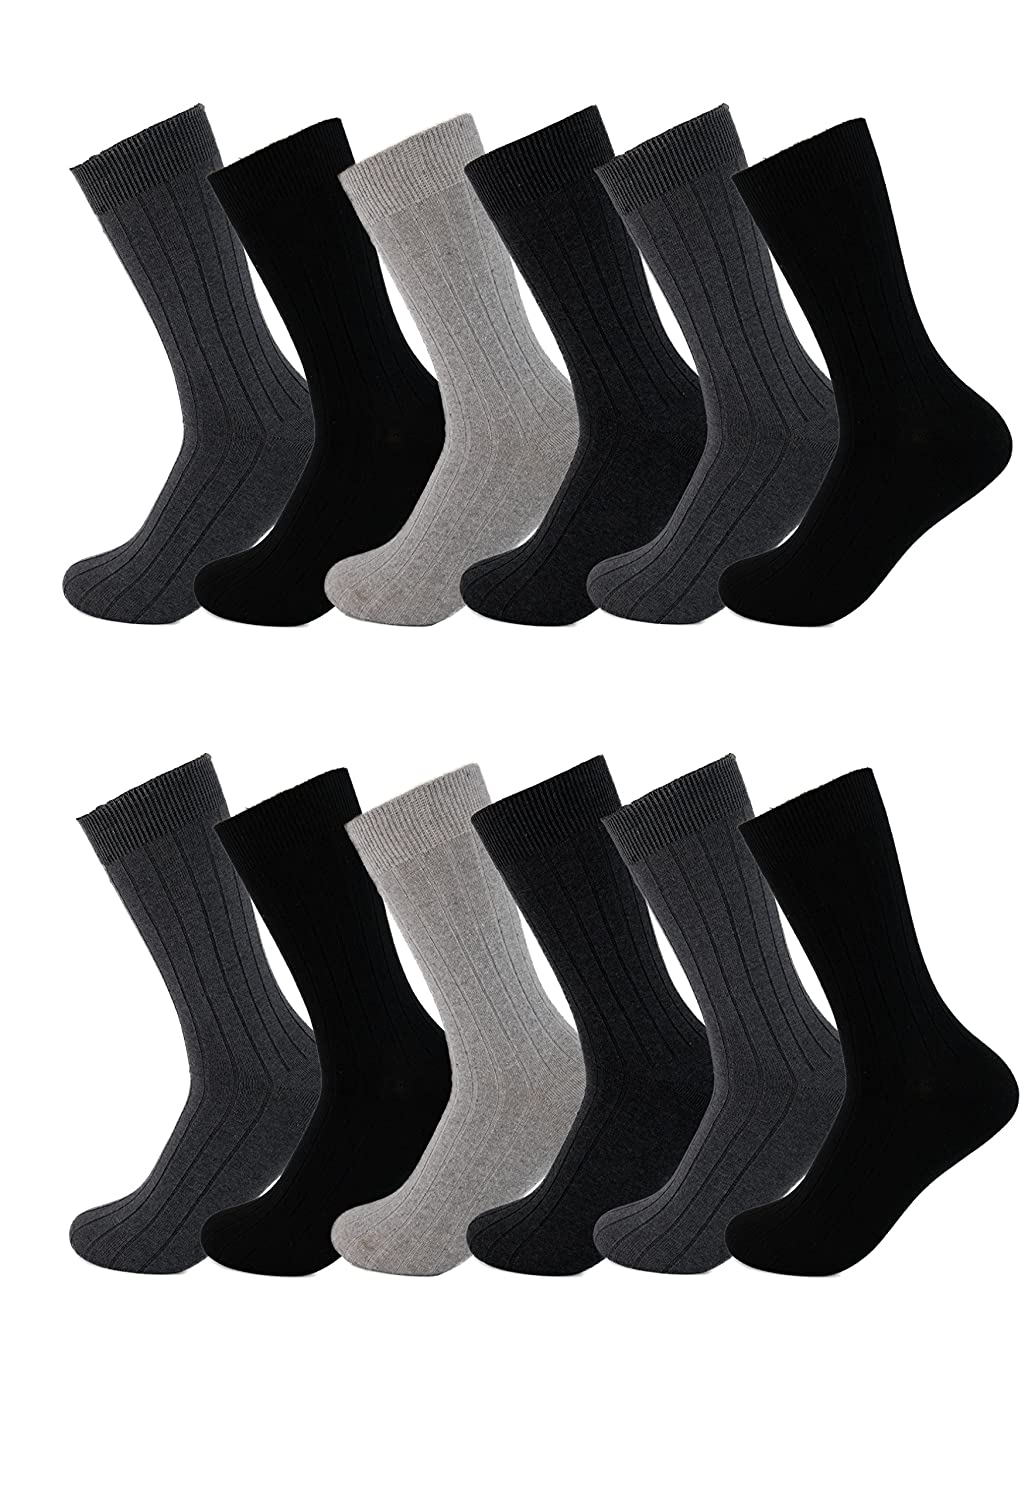 American Casual Men's Cotton Dress Socks